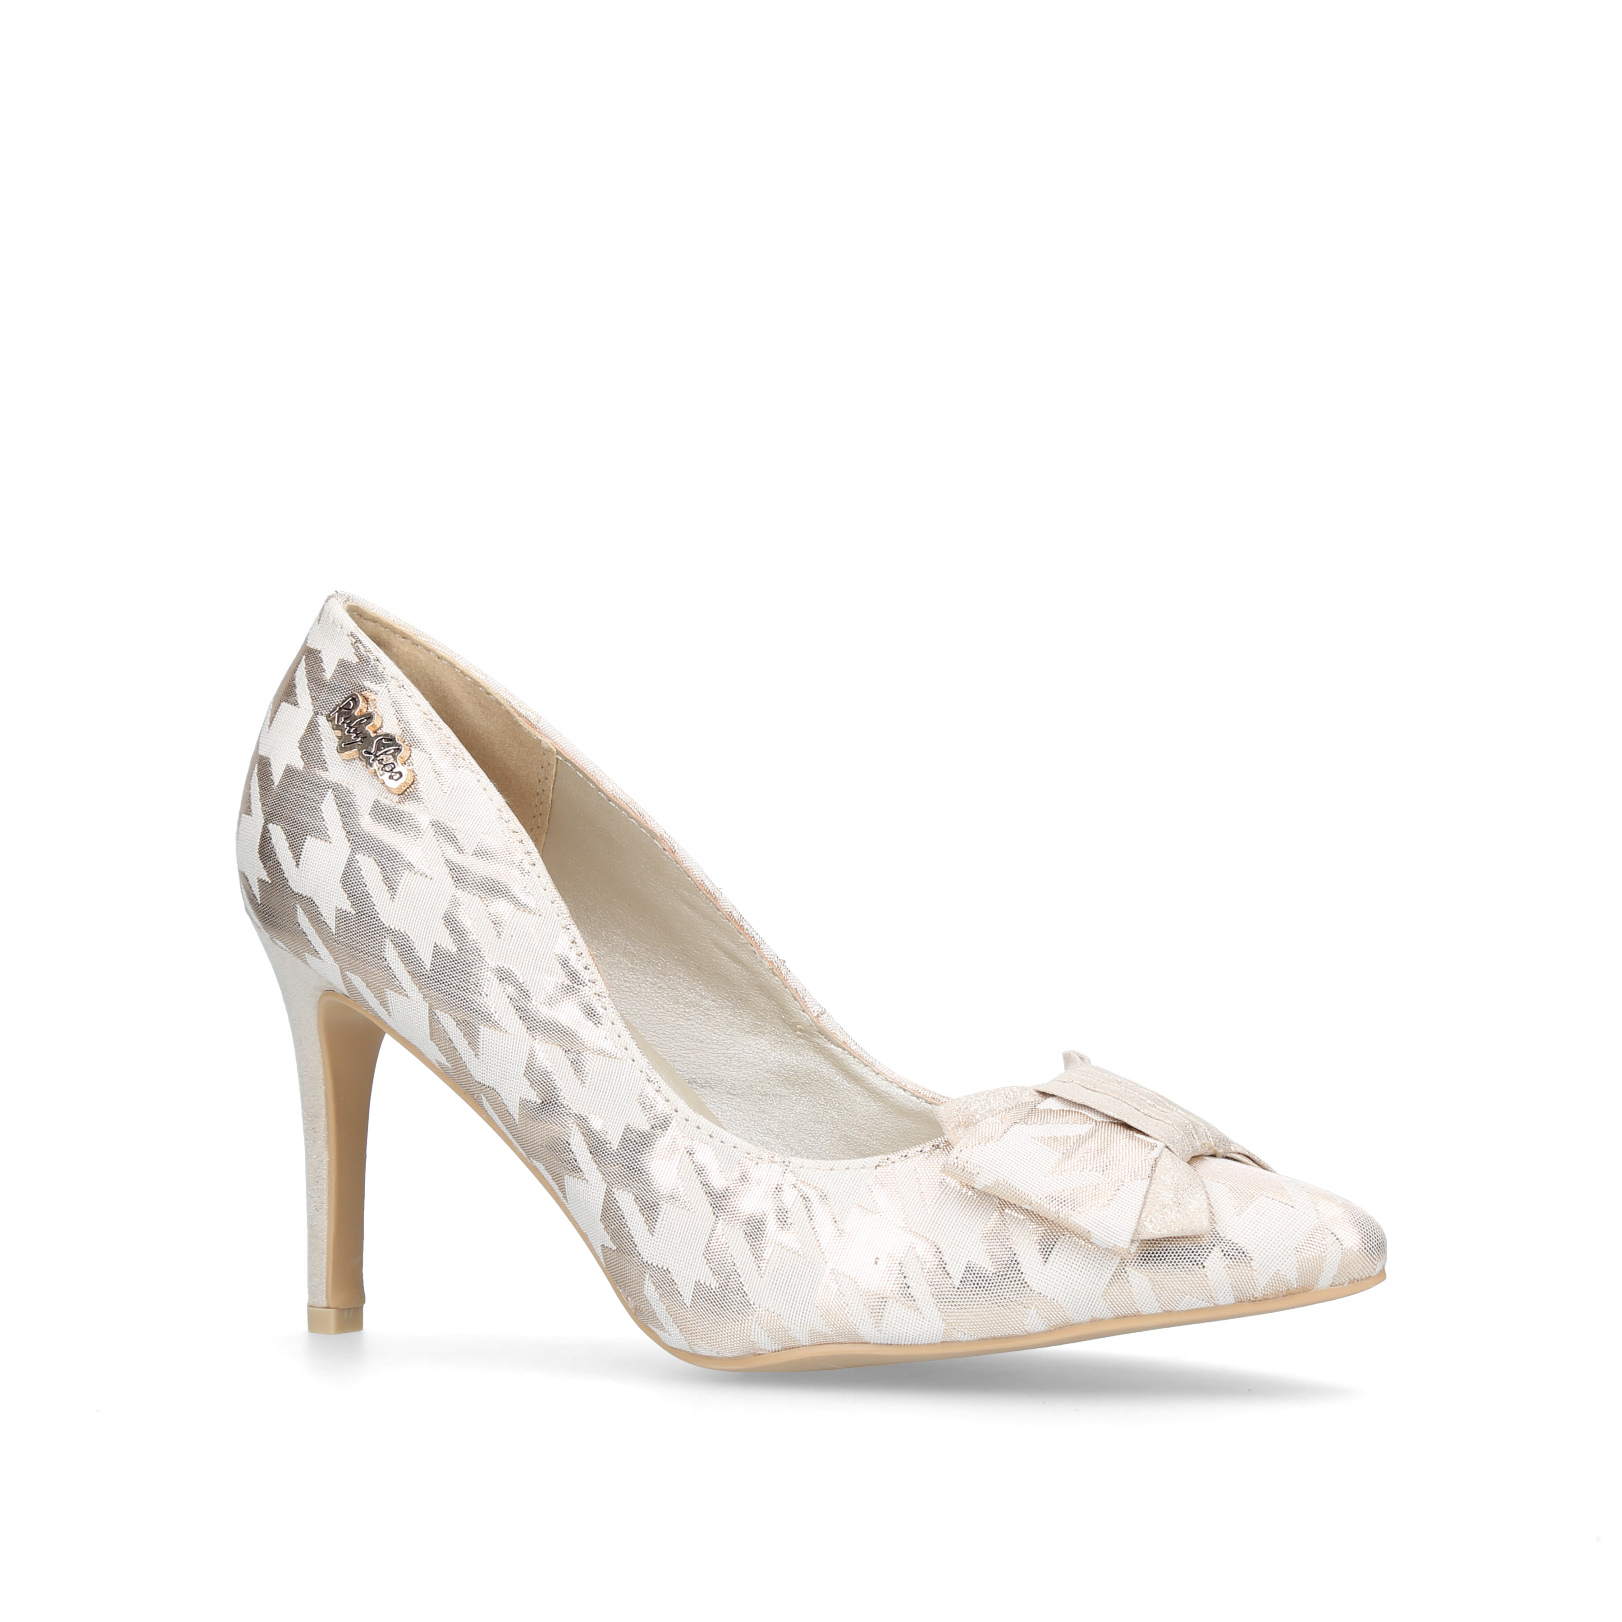 JENNA Ruby Shoo Jenna Cream Fabric   Other Occasion Heels 2d980c9849a1